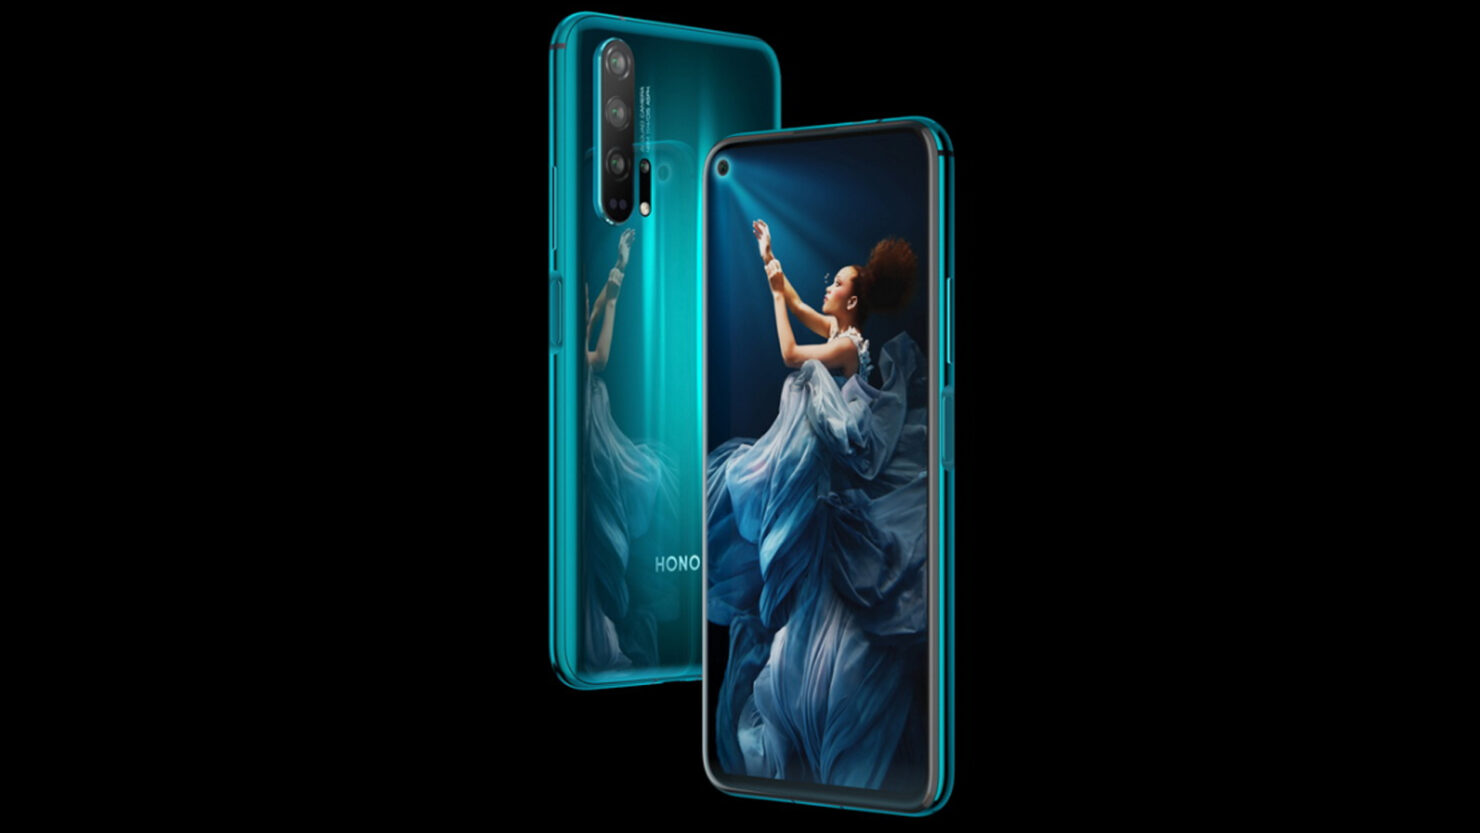 Honor V30 could be Huawei's sub-brand's first affordable 5G handset